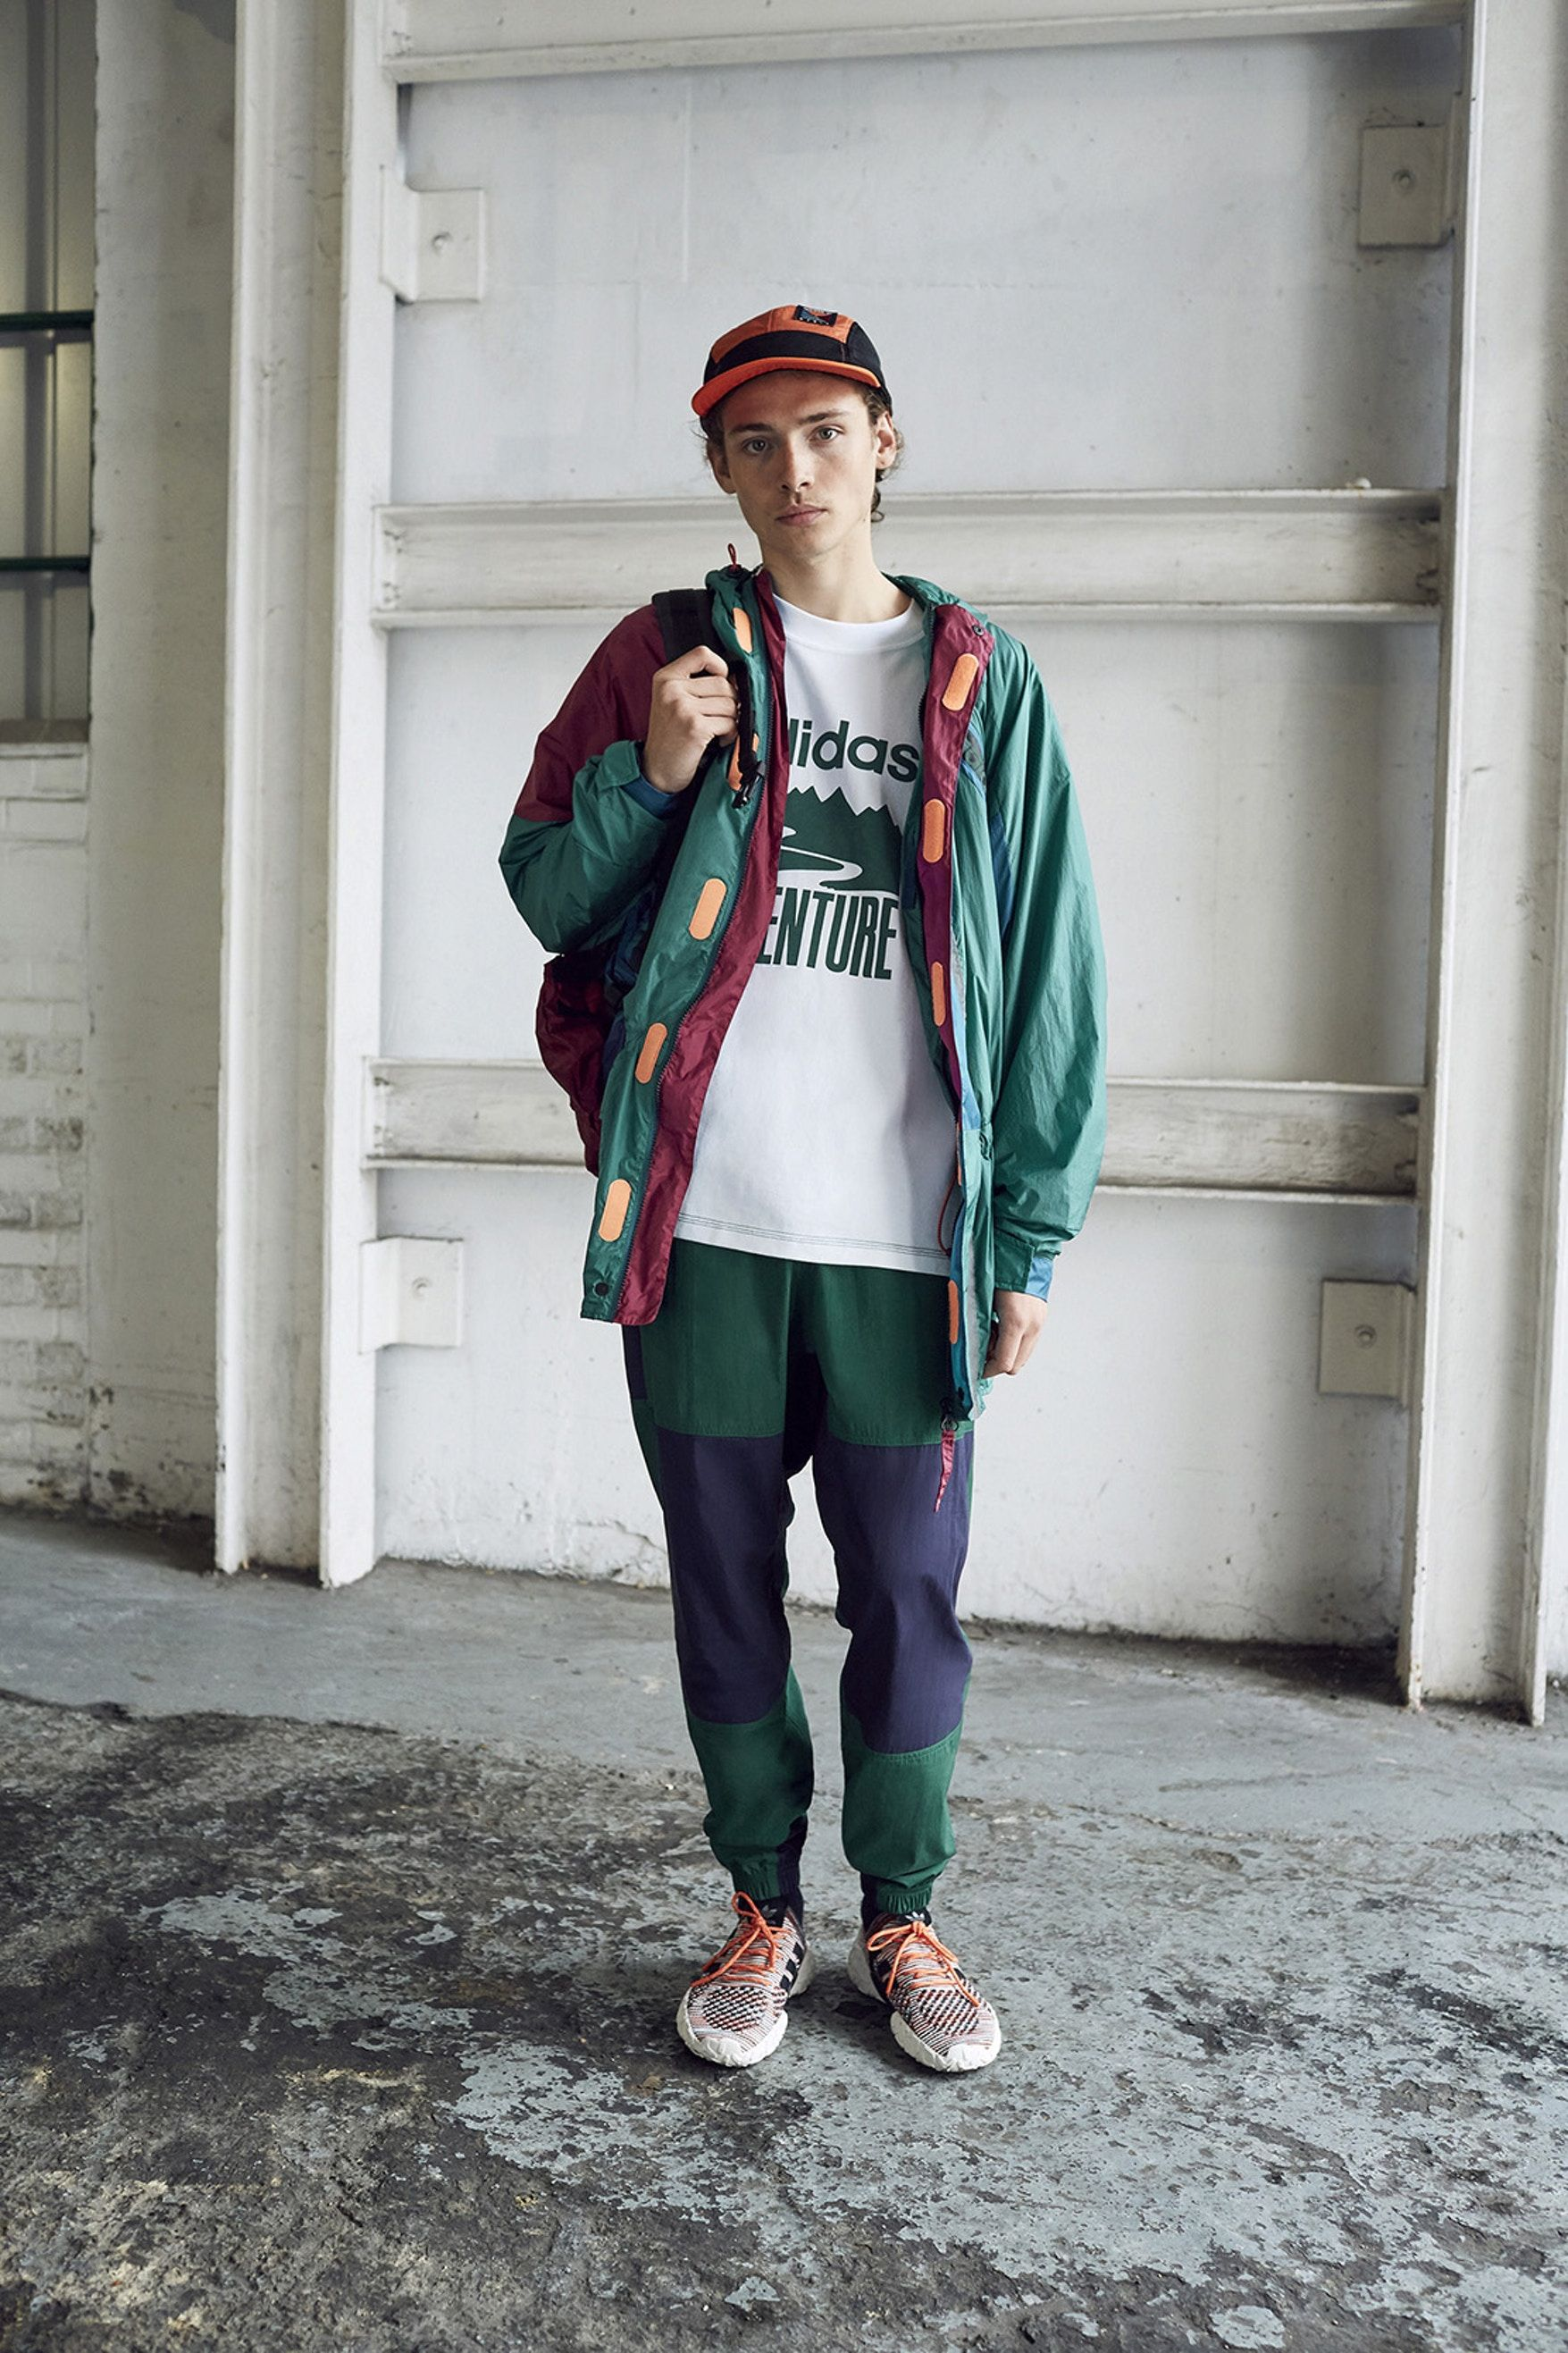 62daecf0369 adidas Originals Reveals Utilitarian ATRIC Collection for Spring ...